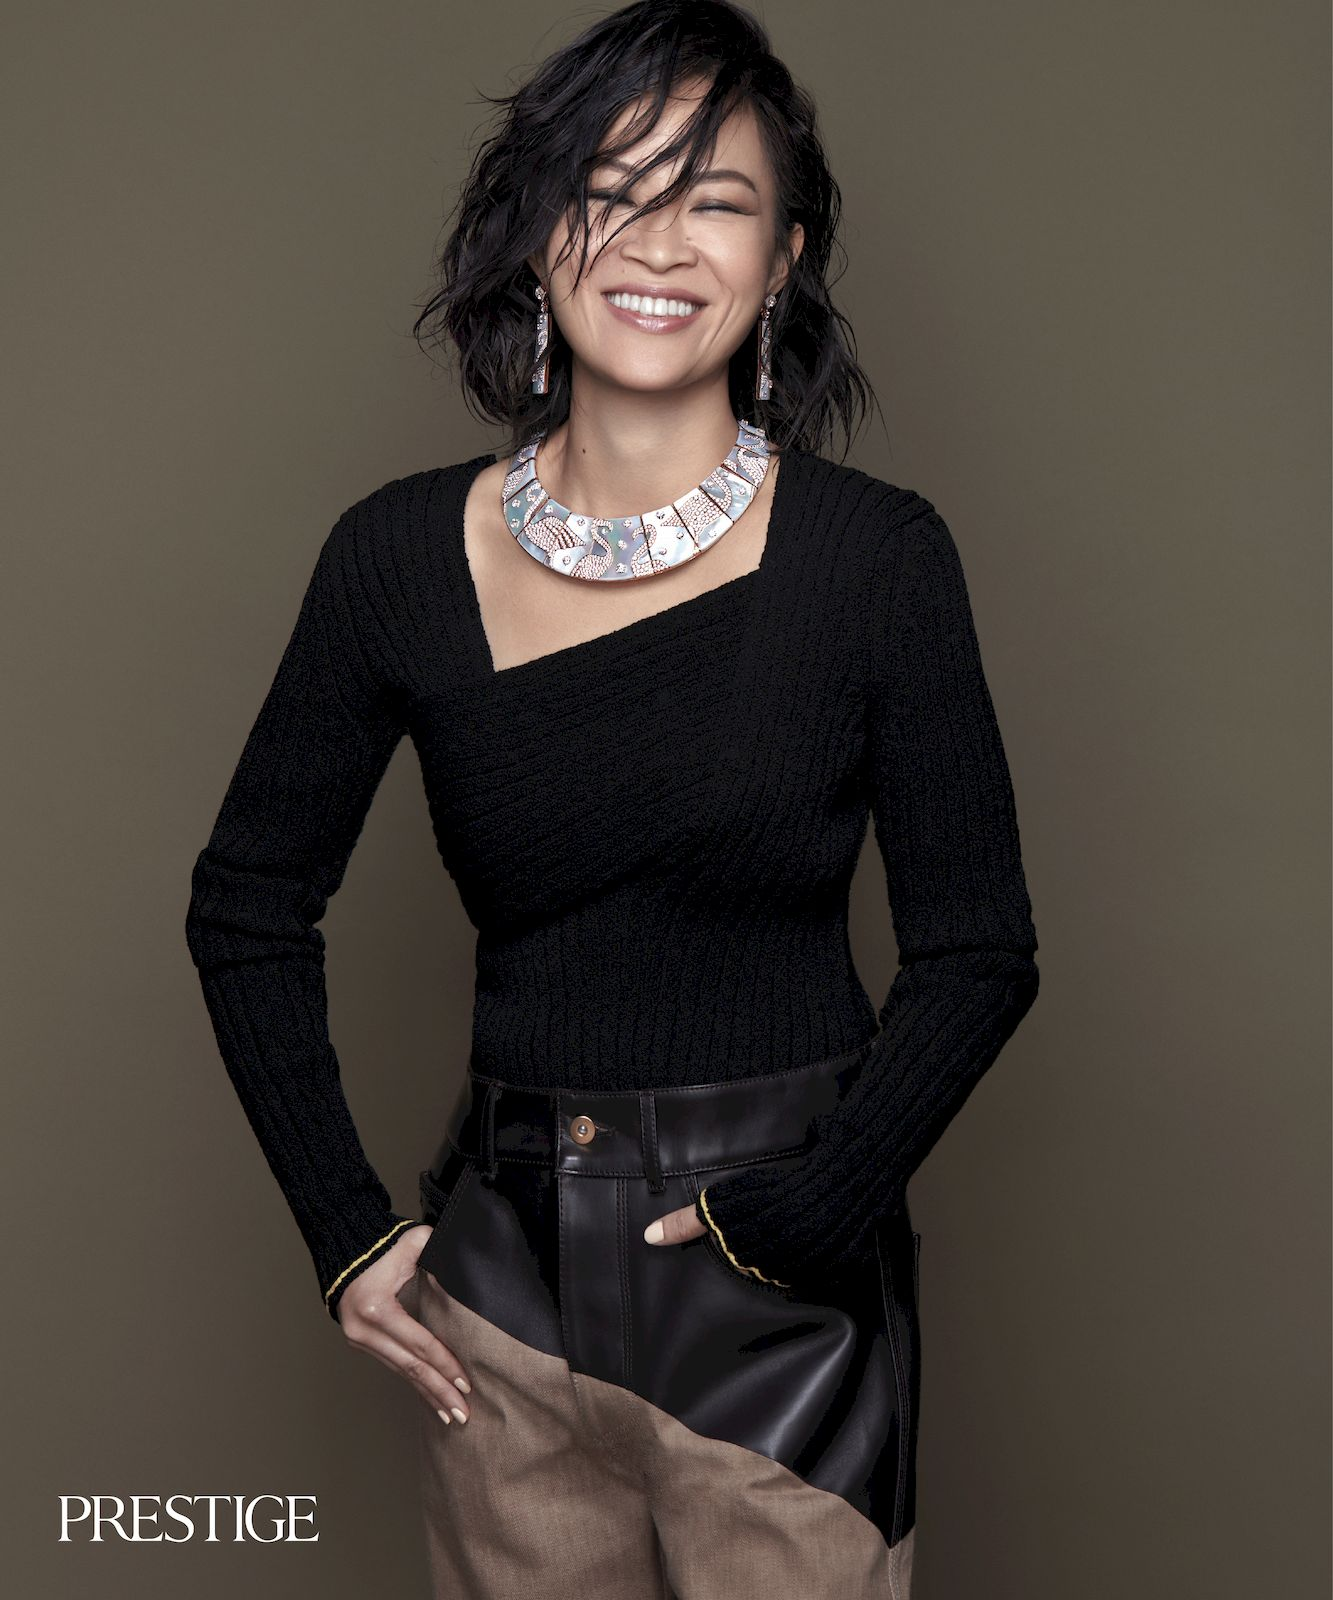 Cover story: Sonia Ong wants to build an all-inclusive community with her wellness initiatives